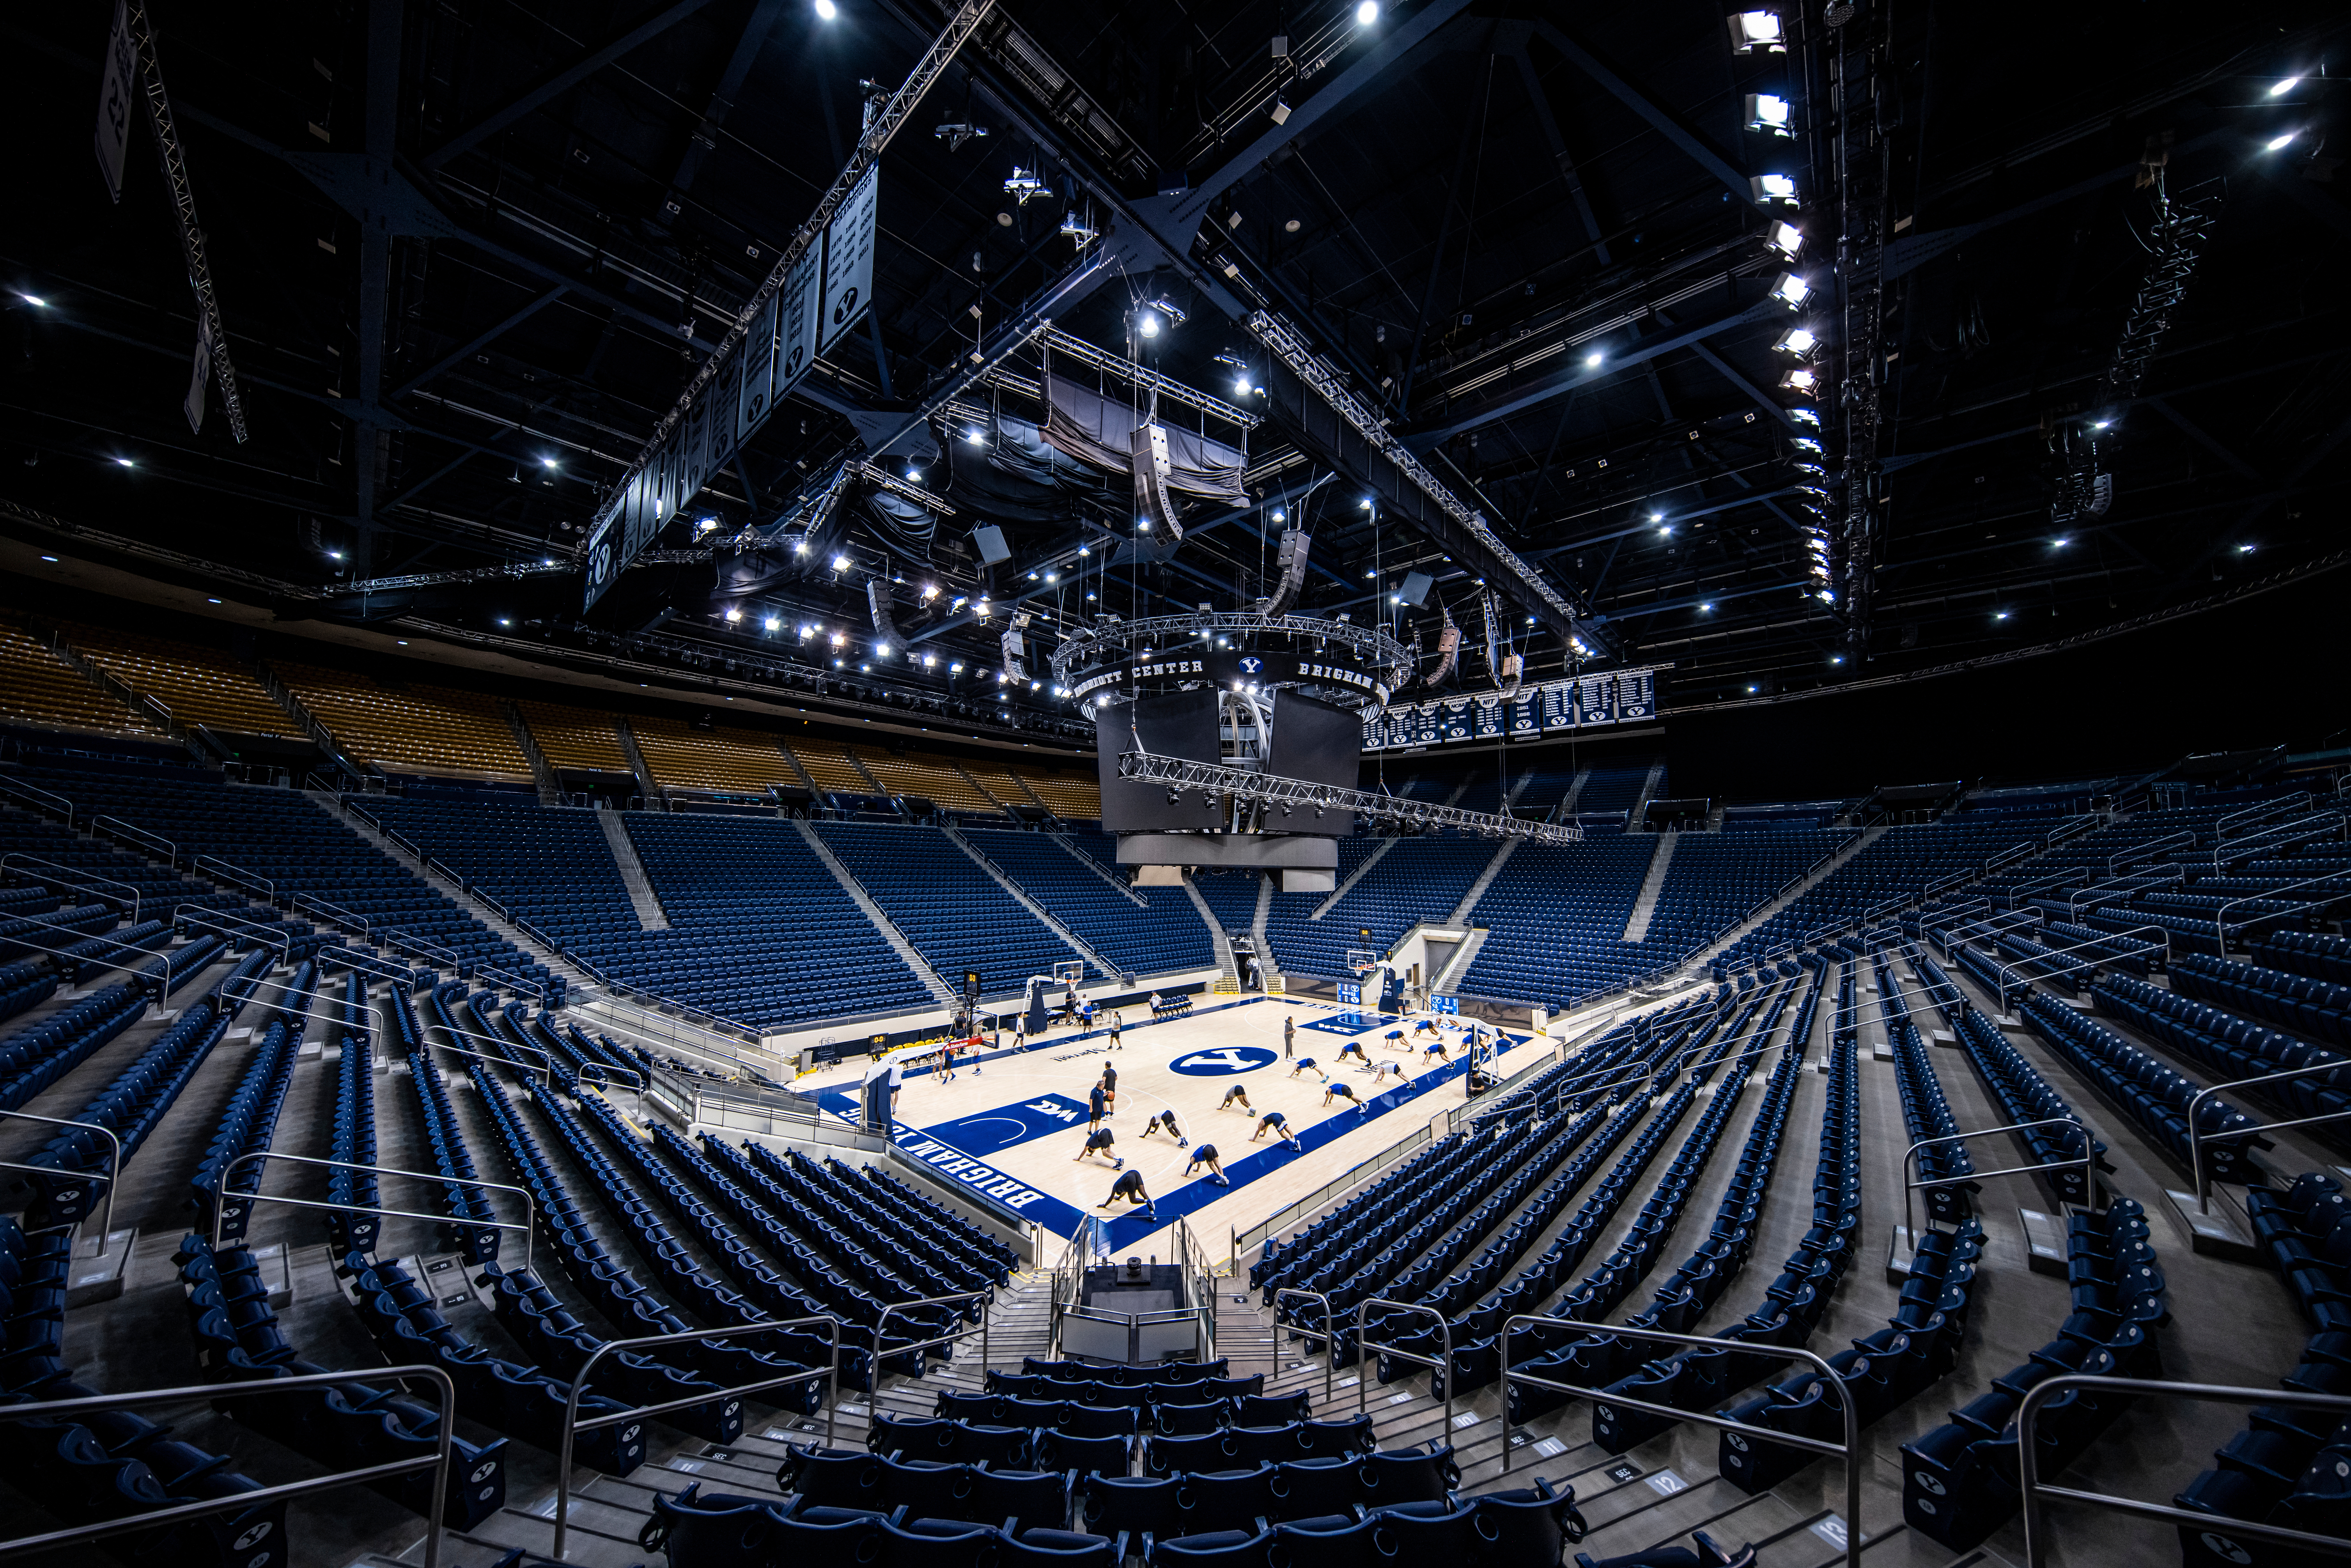 Members of the BYU basketball team stretch prior to a workout in the Marriott Center at BYU in Provo, Utah.